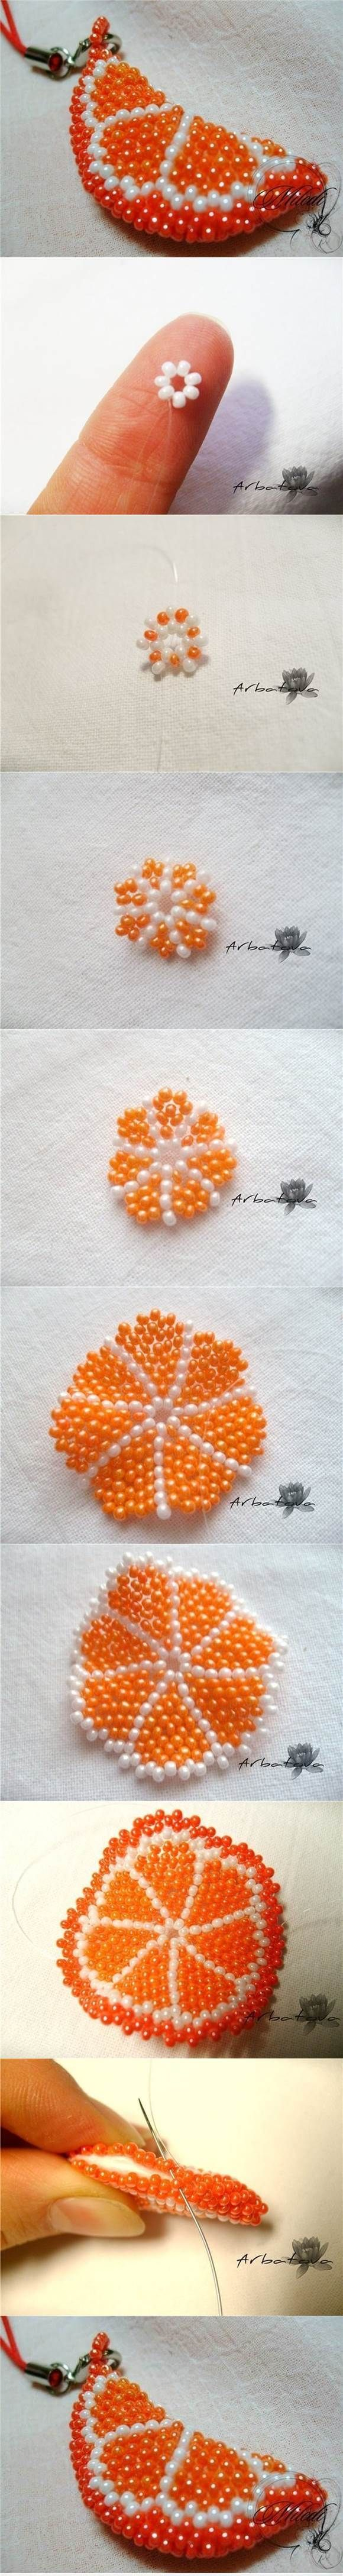 DIY Beaded Orange Slice Key Chain | iCreativeIdeas.com LIKE Us on Facebook ==> https://www.facebook.com/icreativeideas